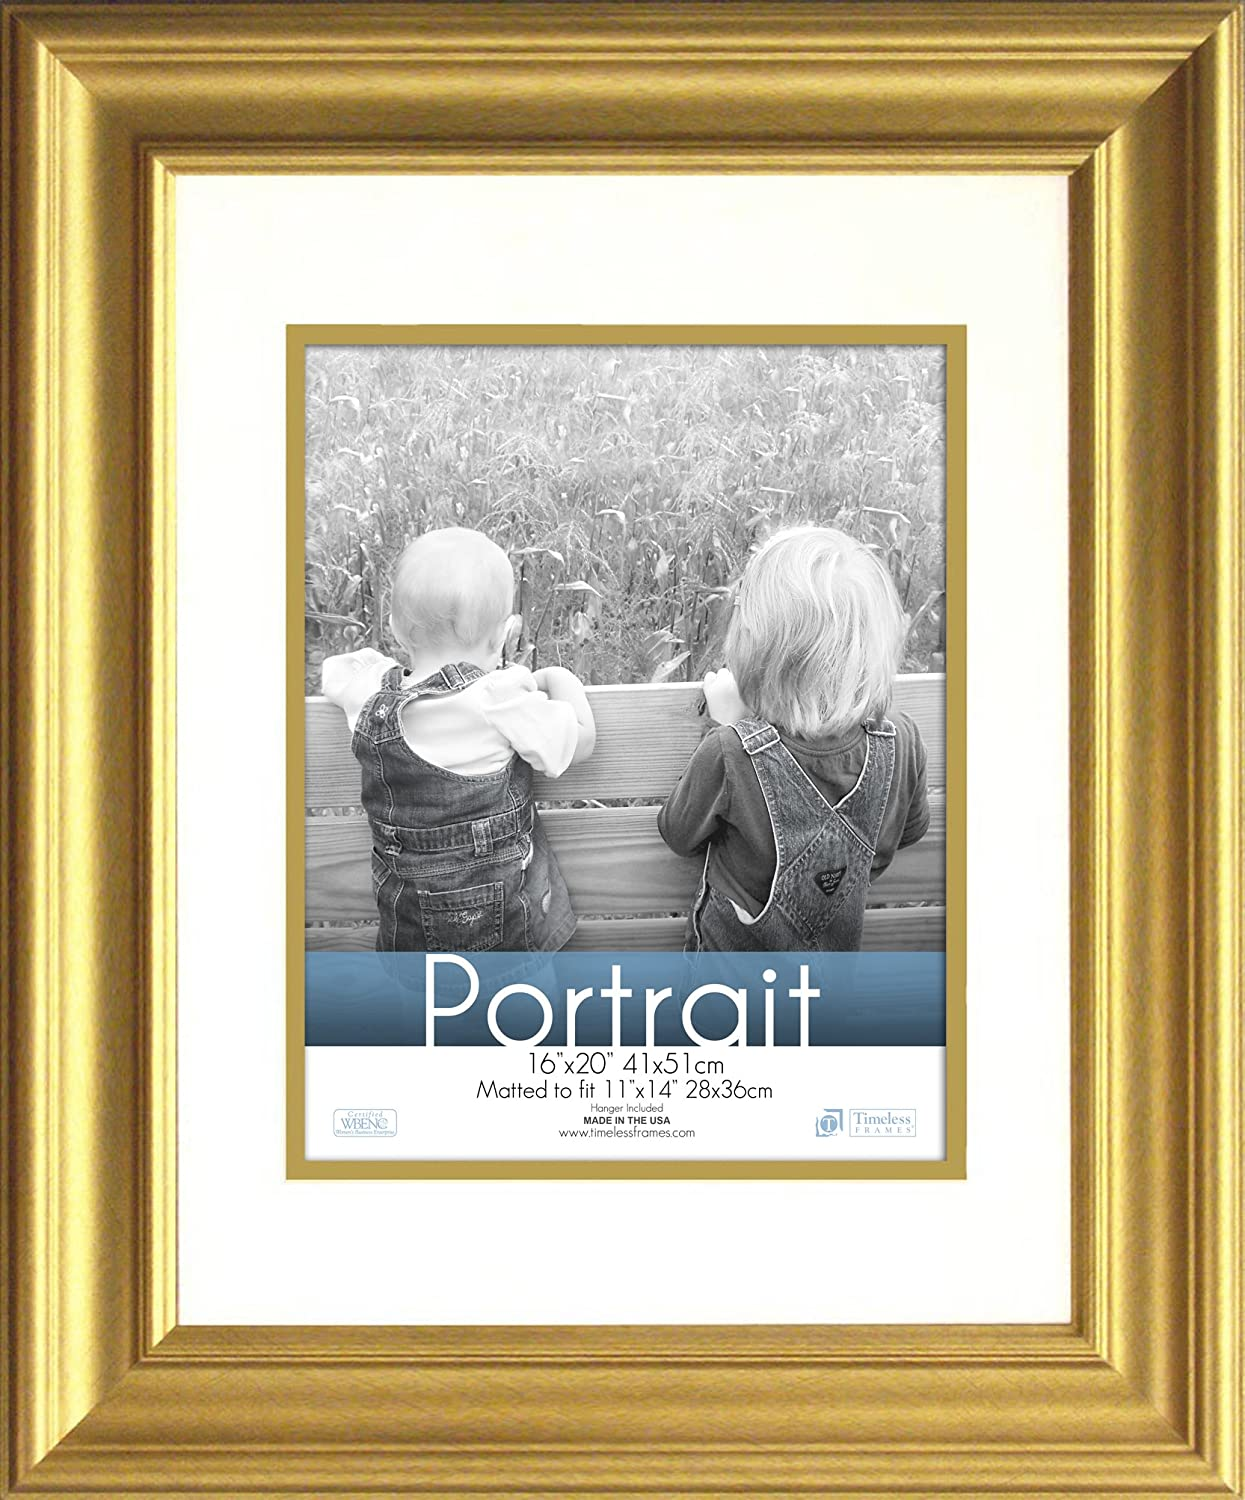 Amazon timeless frames 16x20 inch fits 11x14 inch photo amazon timeless frames 16x20 inch fits 11x14 inch photo lauren portrait wall frame gold single frames jeuxipadfo Choice Image